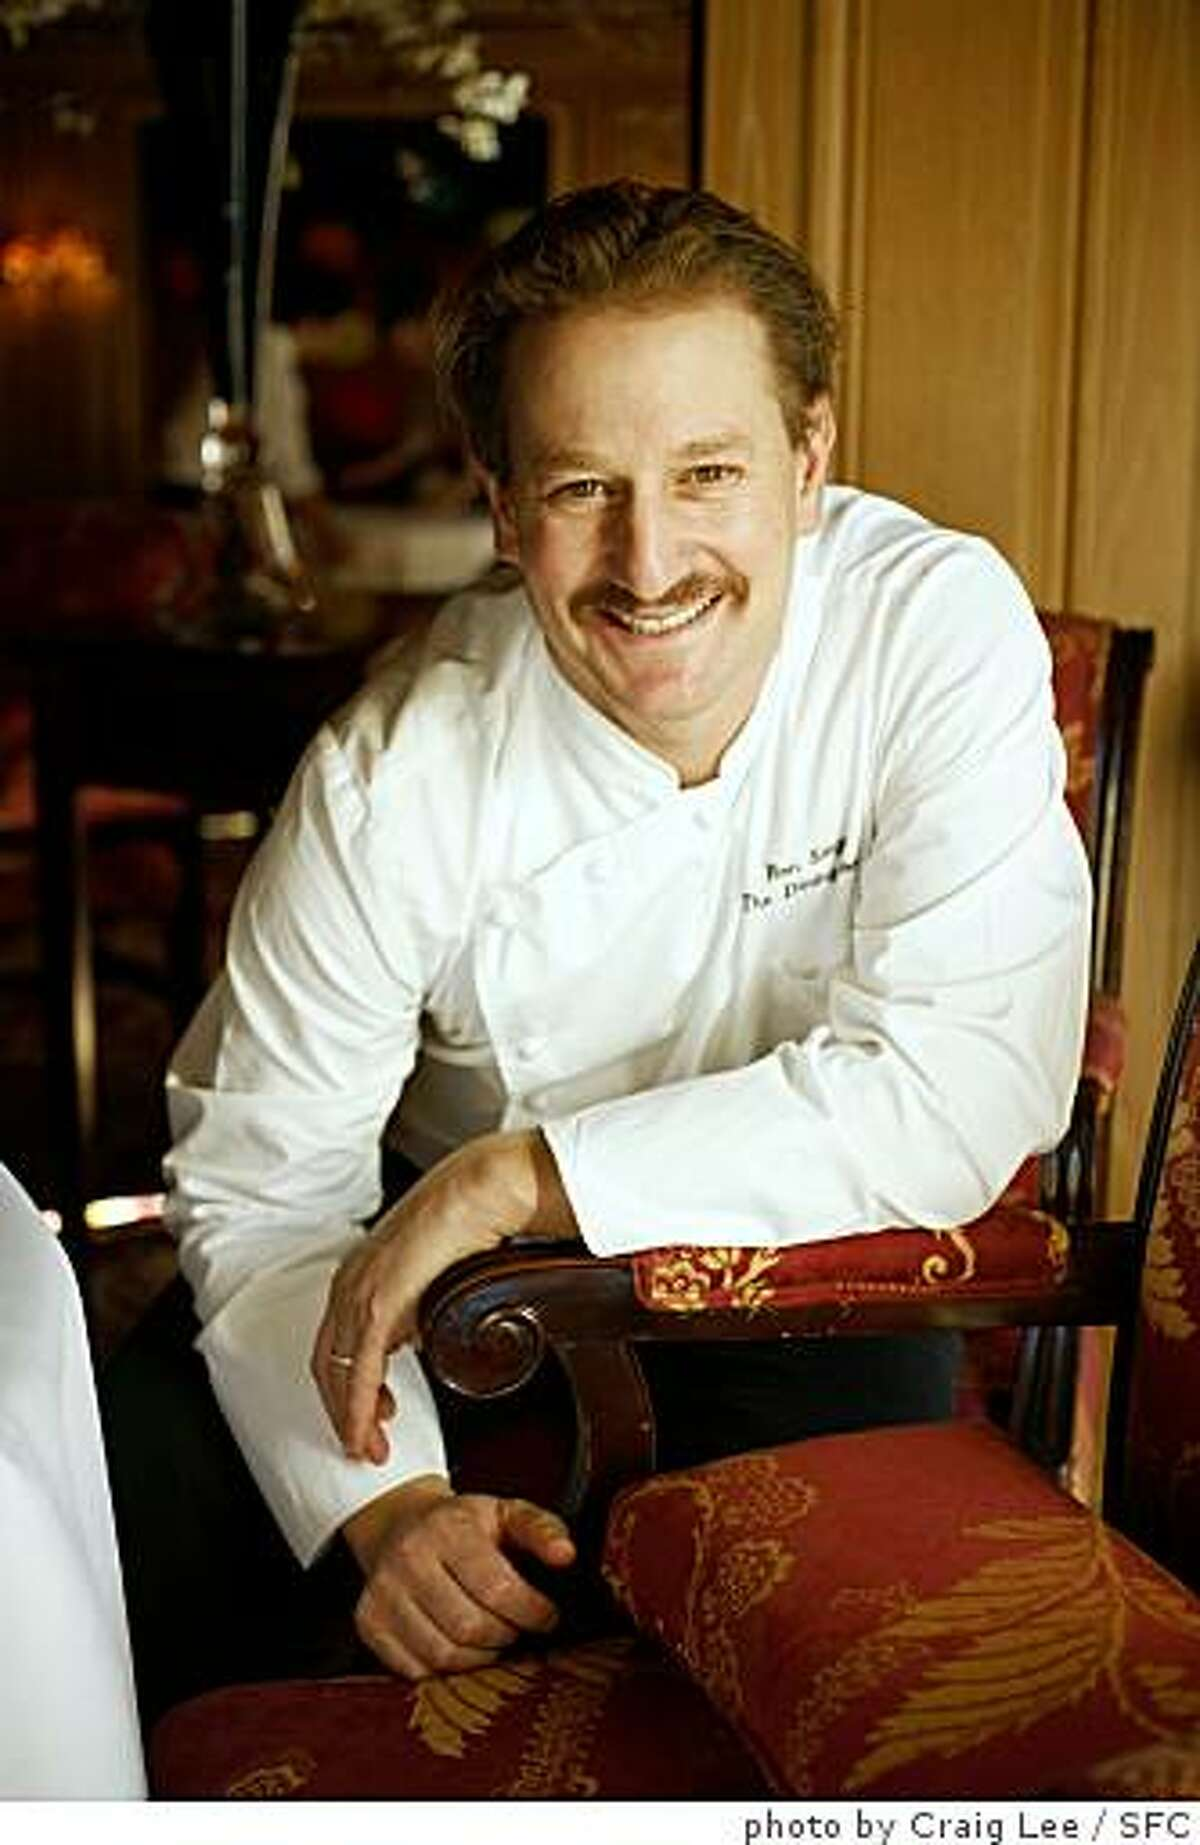 Ron Siegel, chef of the Dining Room at the Ritz Carlton, with his Christmas dish: Lamb Chops with Sunchoke Puree and Shallot Marmalade. Photo of chef, Ron Siegel.